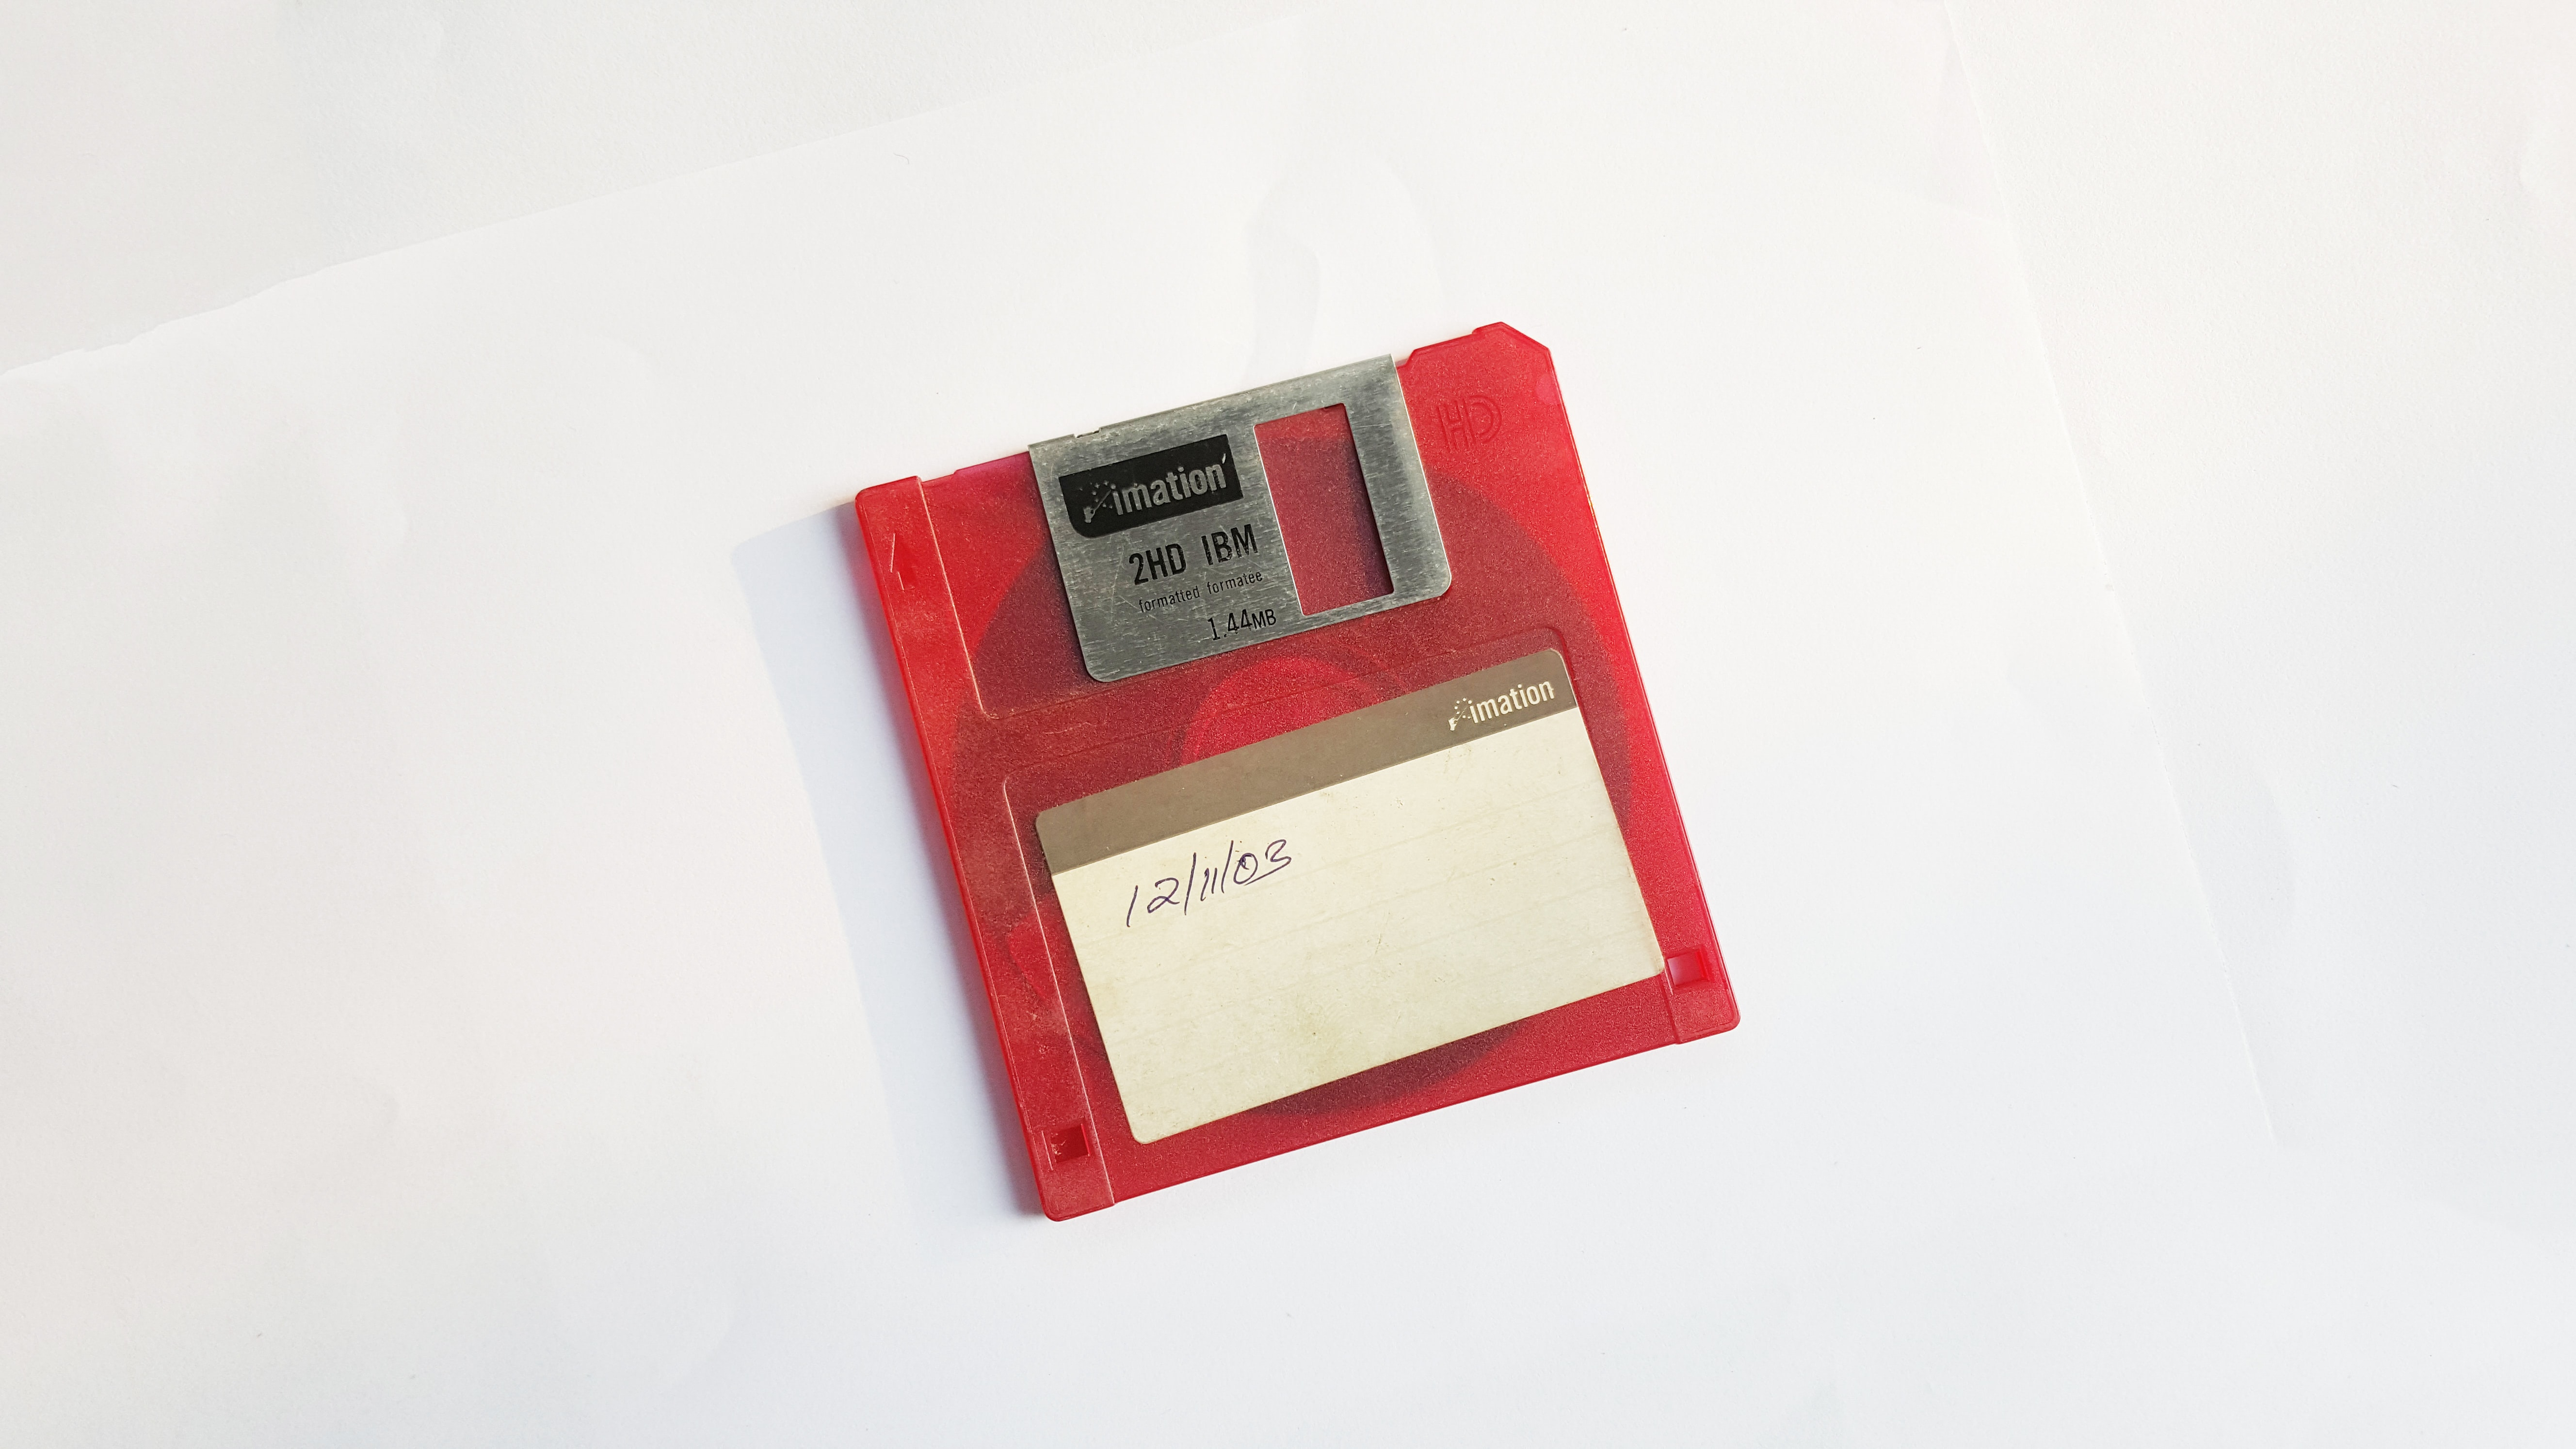 red 'floppy' storage disk on a white table